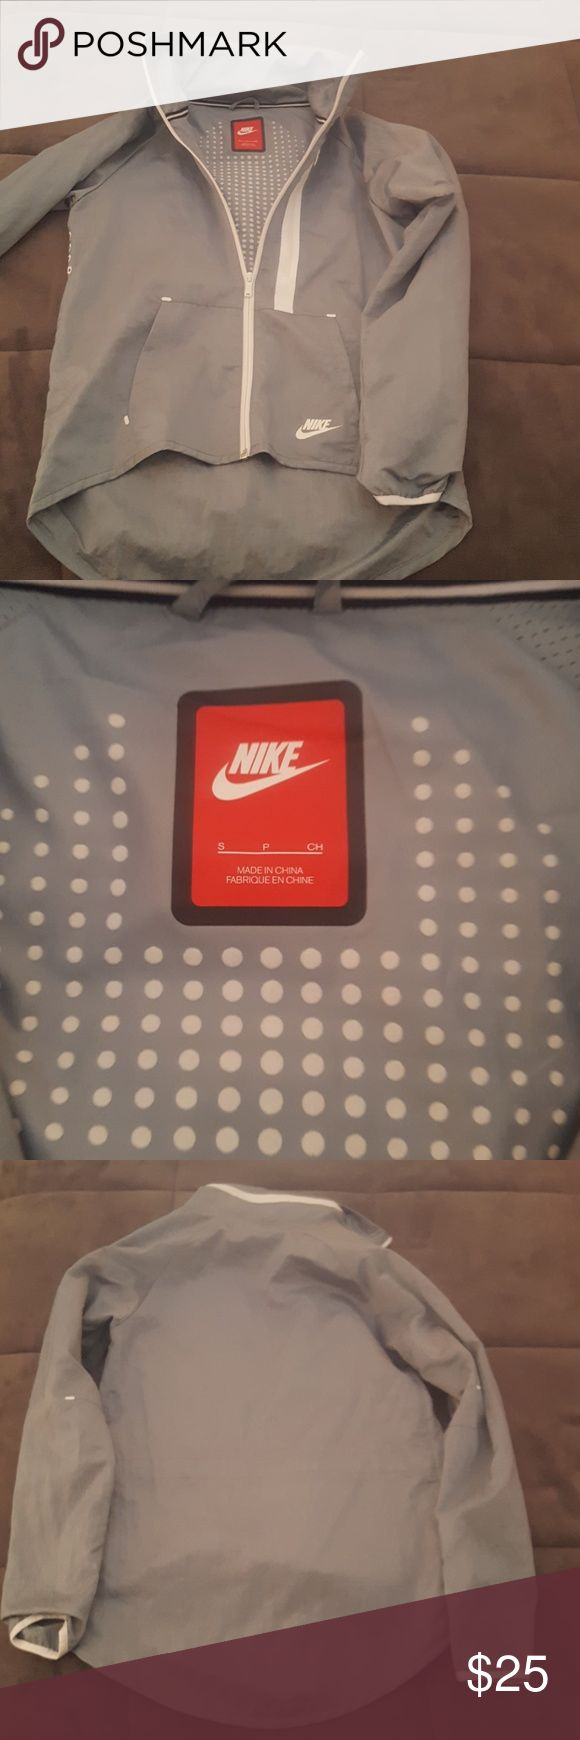 Nike women's running jacket Slim-fitting women's running jacket in size small. Brand new, never worn. Soft Gray with zip out Hood.  Size small. Nike Jackets & Coats Utility Jackets